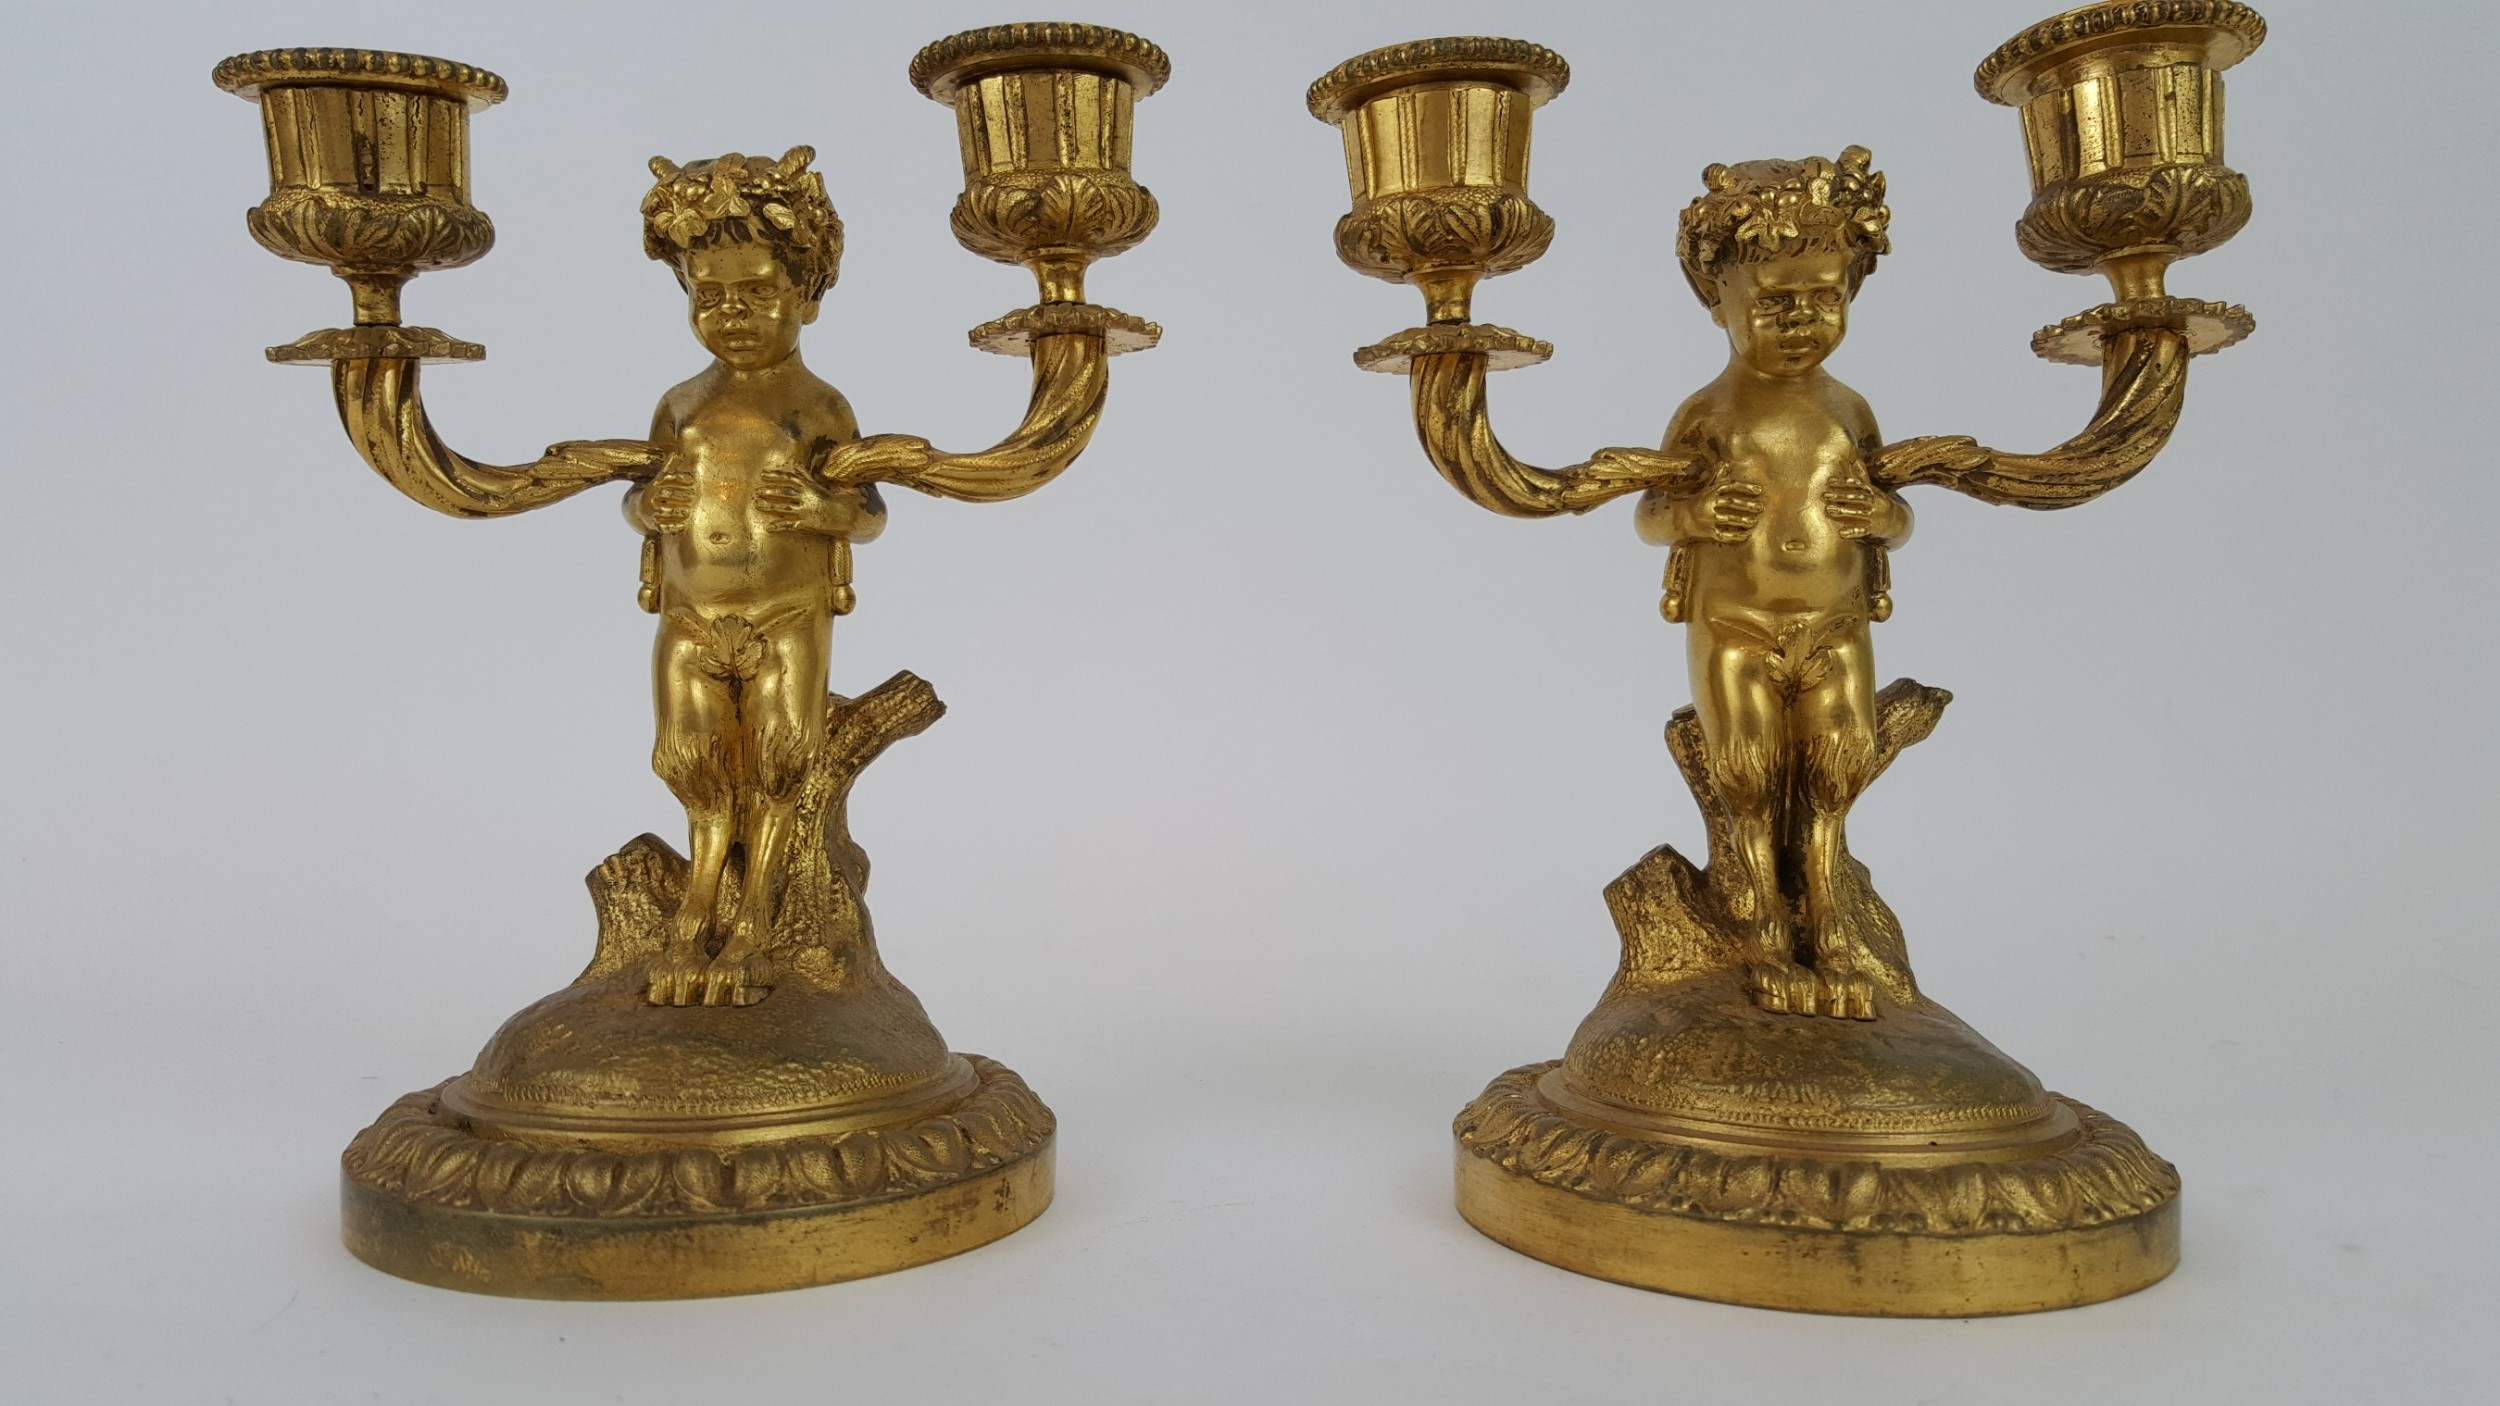 pair of 19th century french bronze candle holders